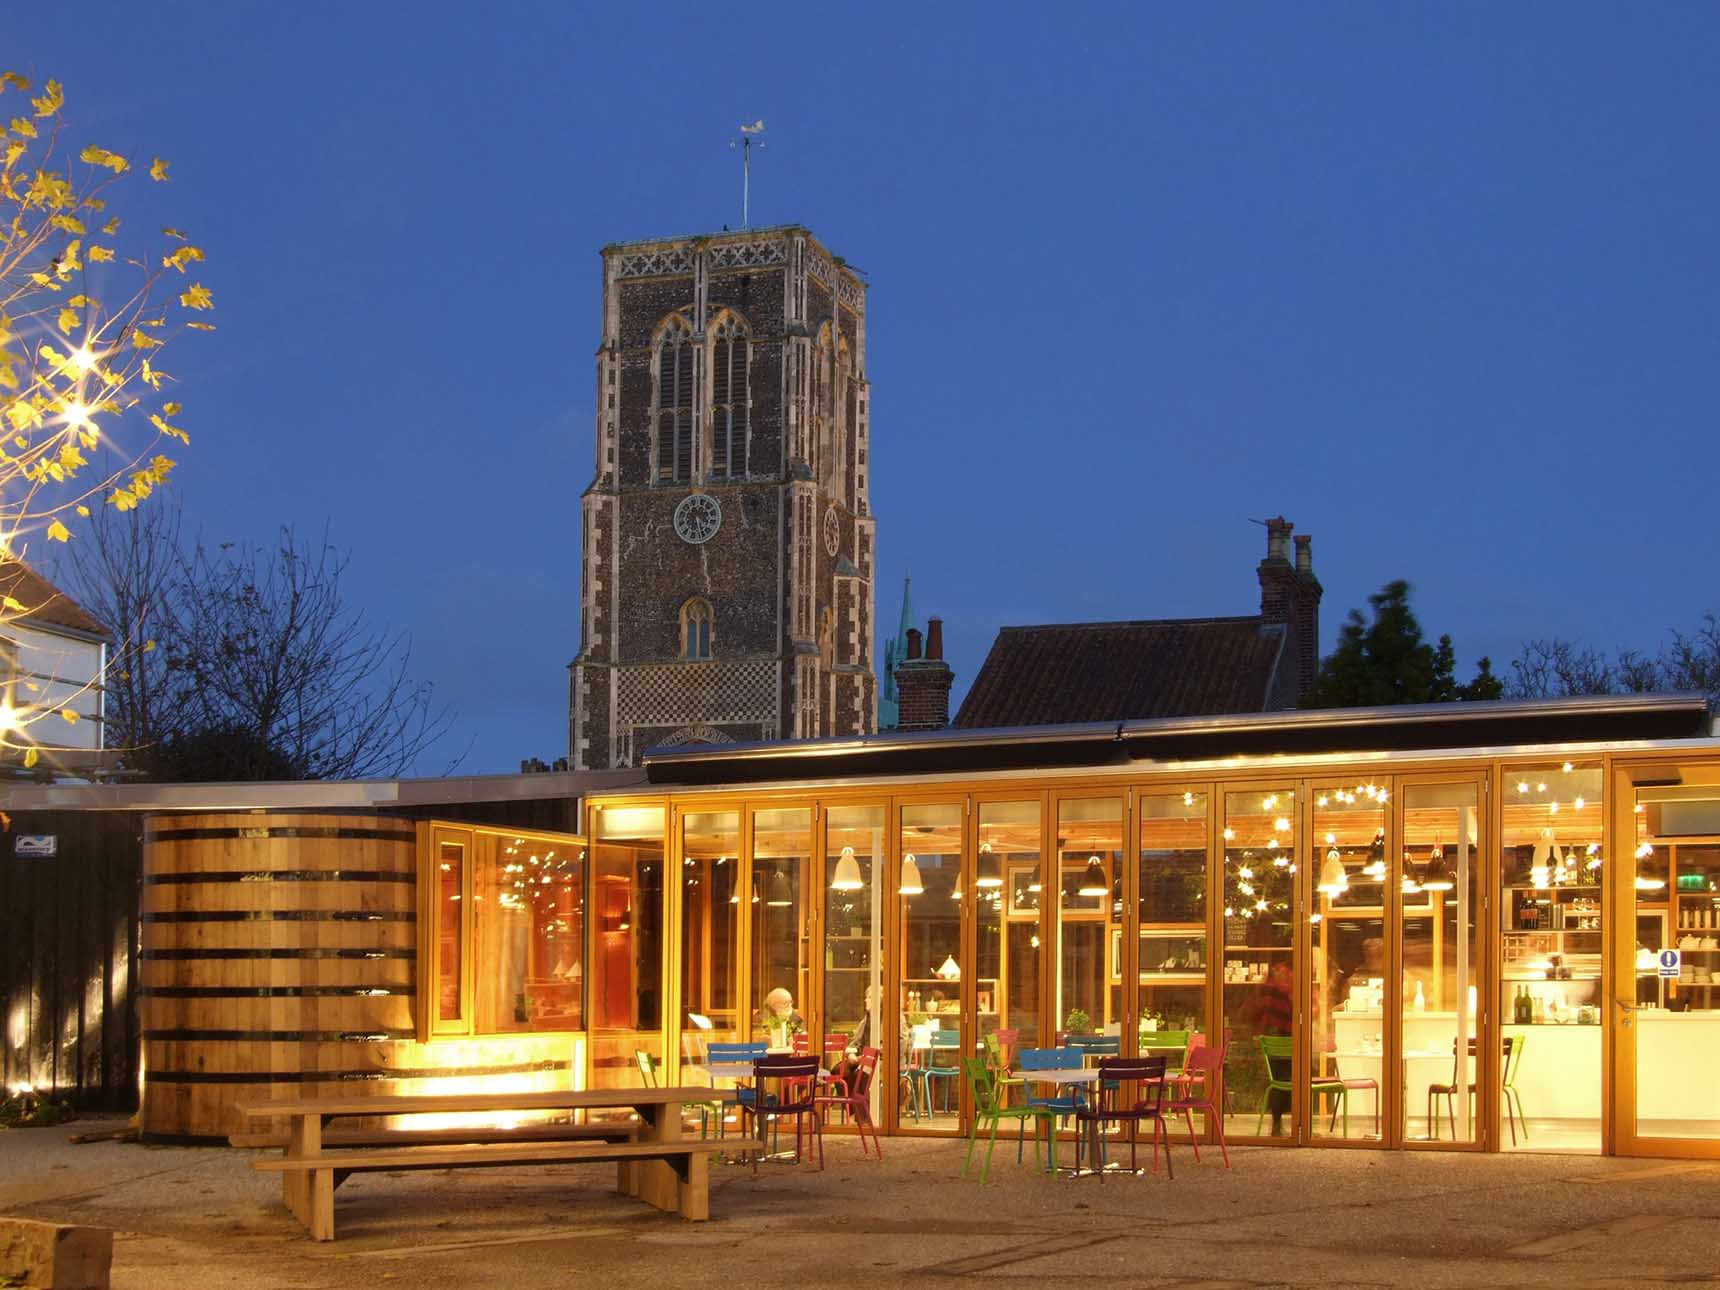 Dusk view of the warmly lit cafe with the stone church tower behind.